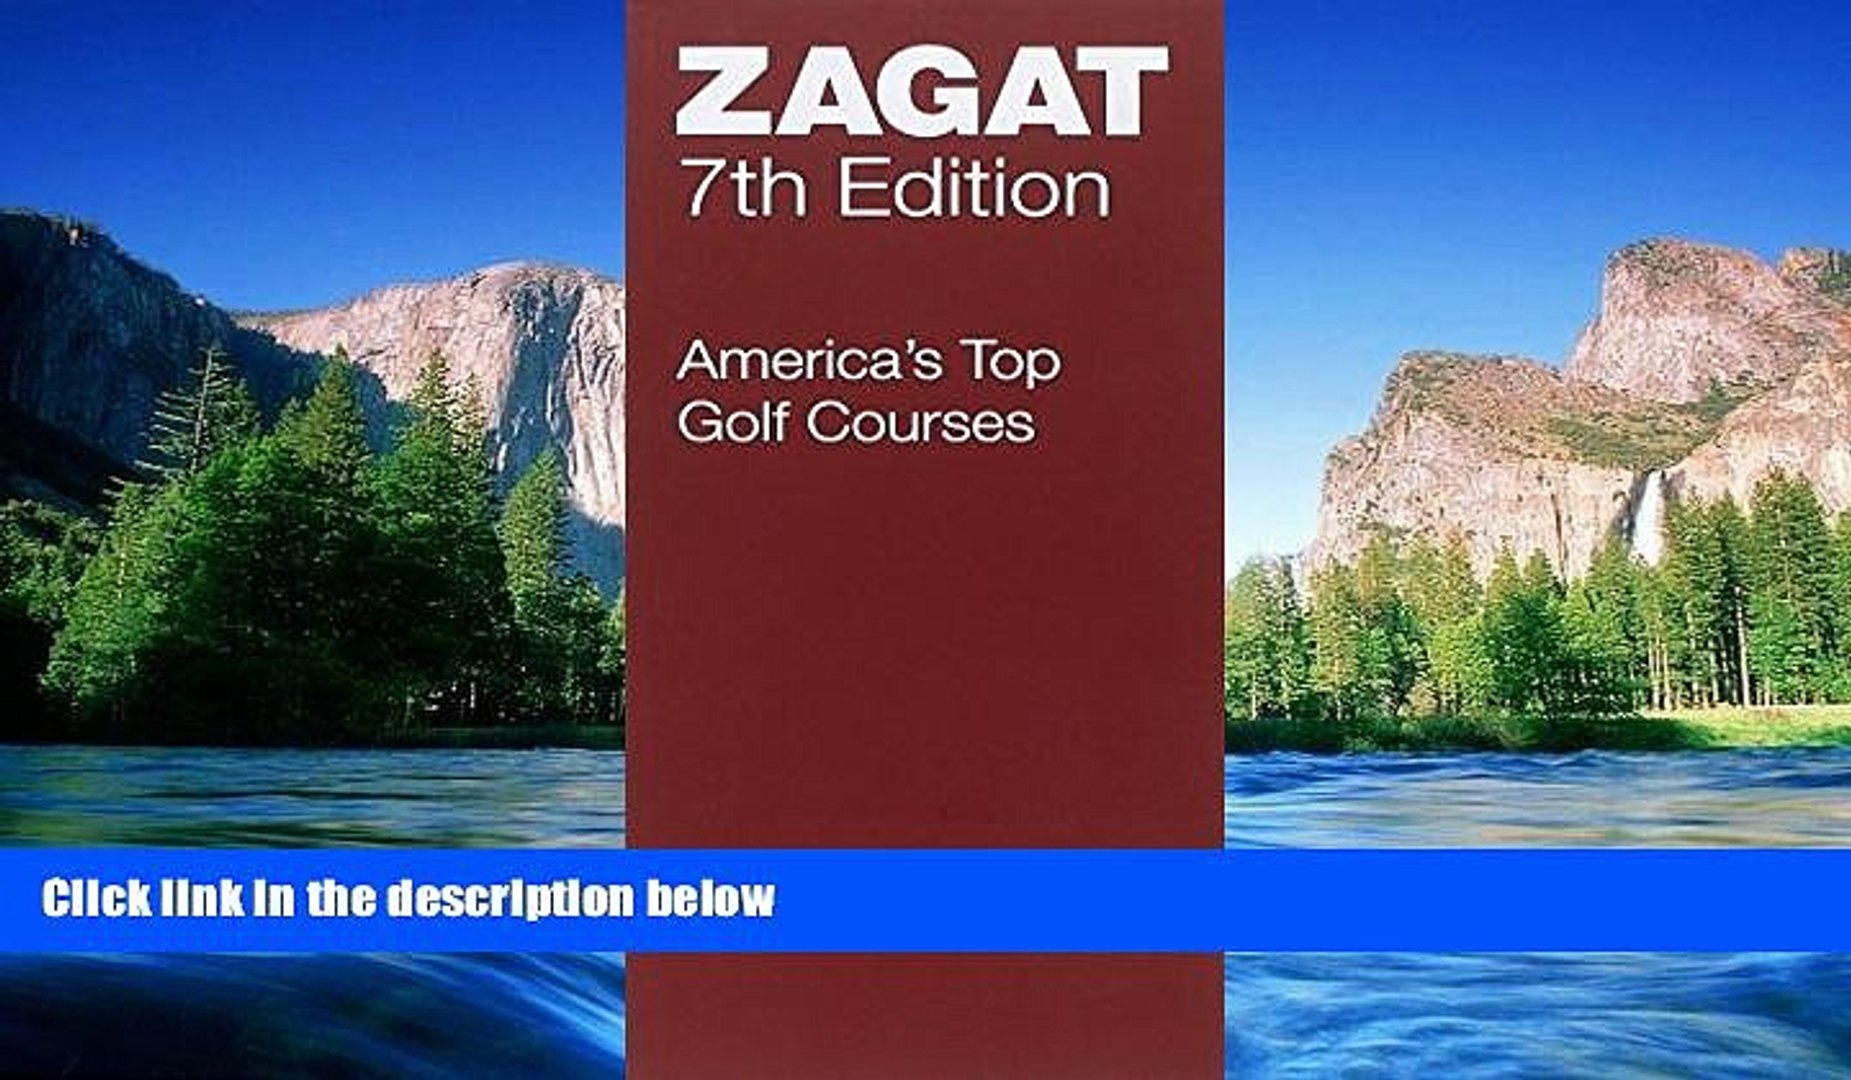 READ FULL  America s Top Golf Courses Seventh Edition (Zagatsurvey : America s Top Golf Courses)